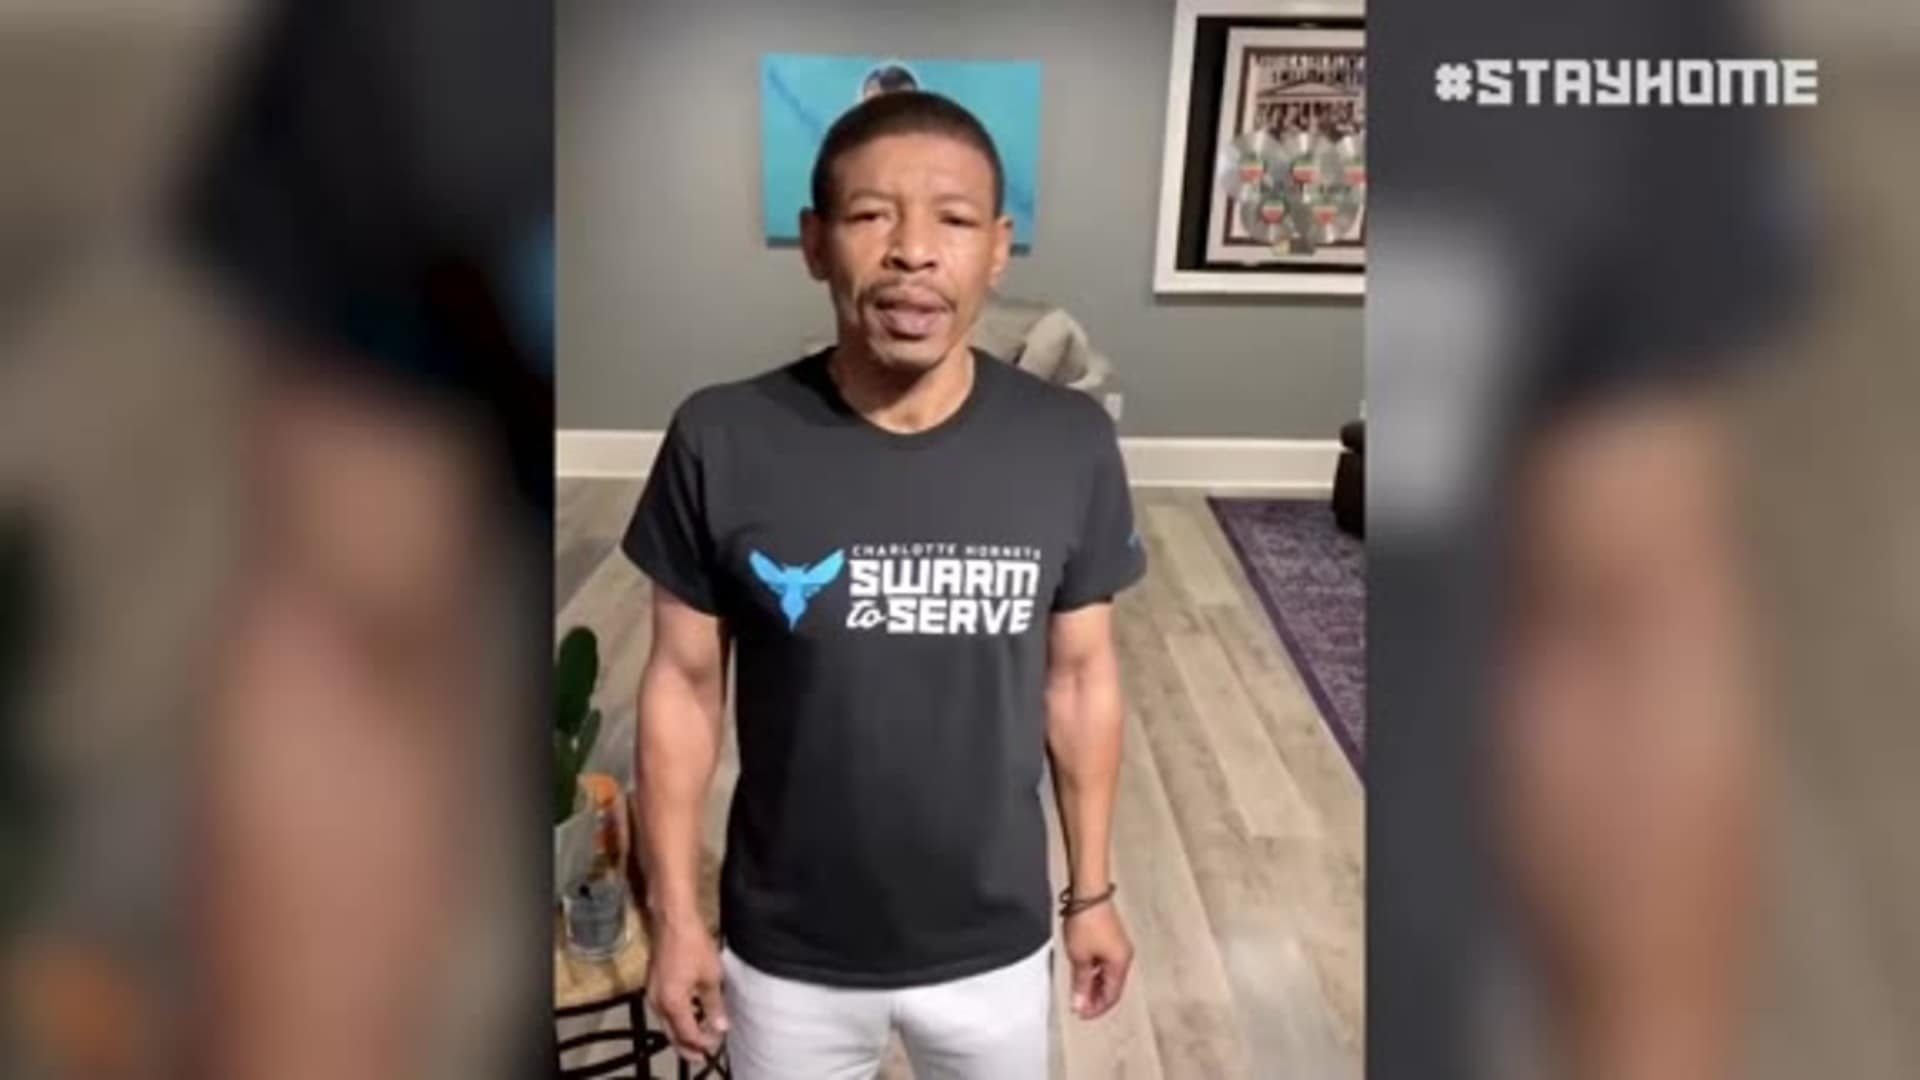 Muggsy Encourages Us to Stay Safe, Stay Healthy and Stay Home